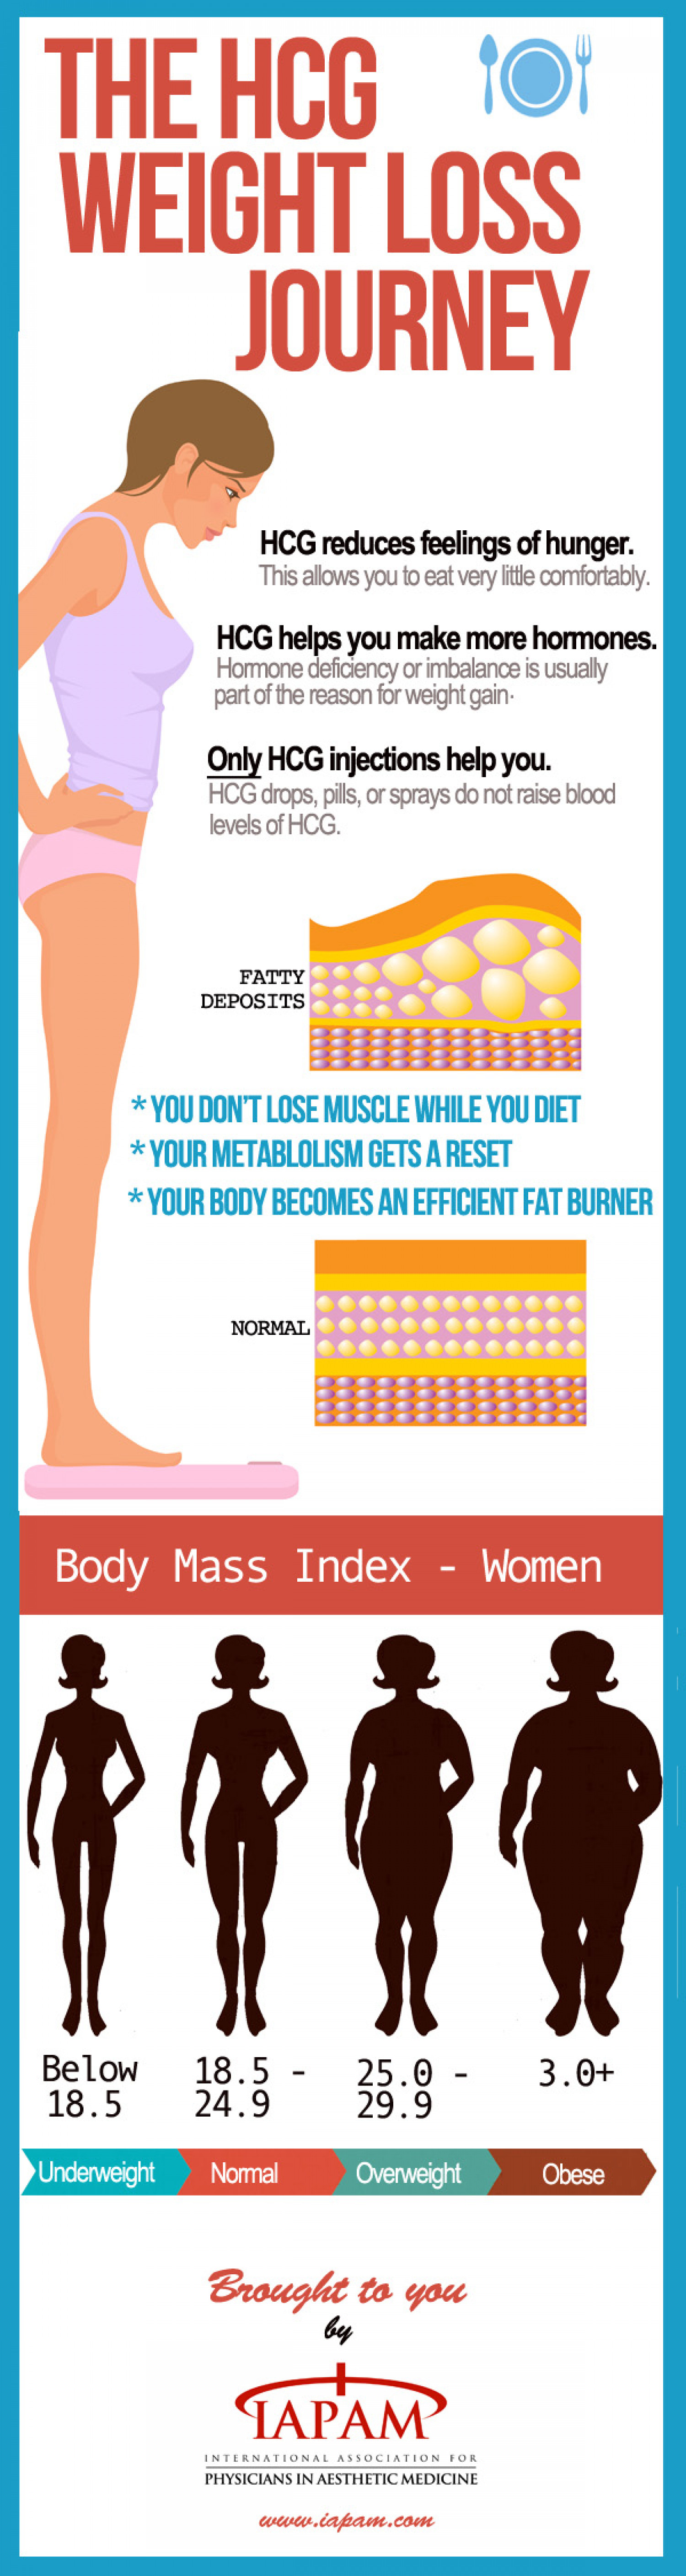 The HCG Weight Loss Journey Infographic